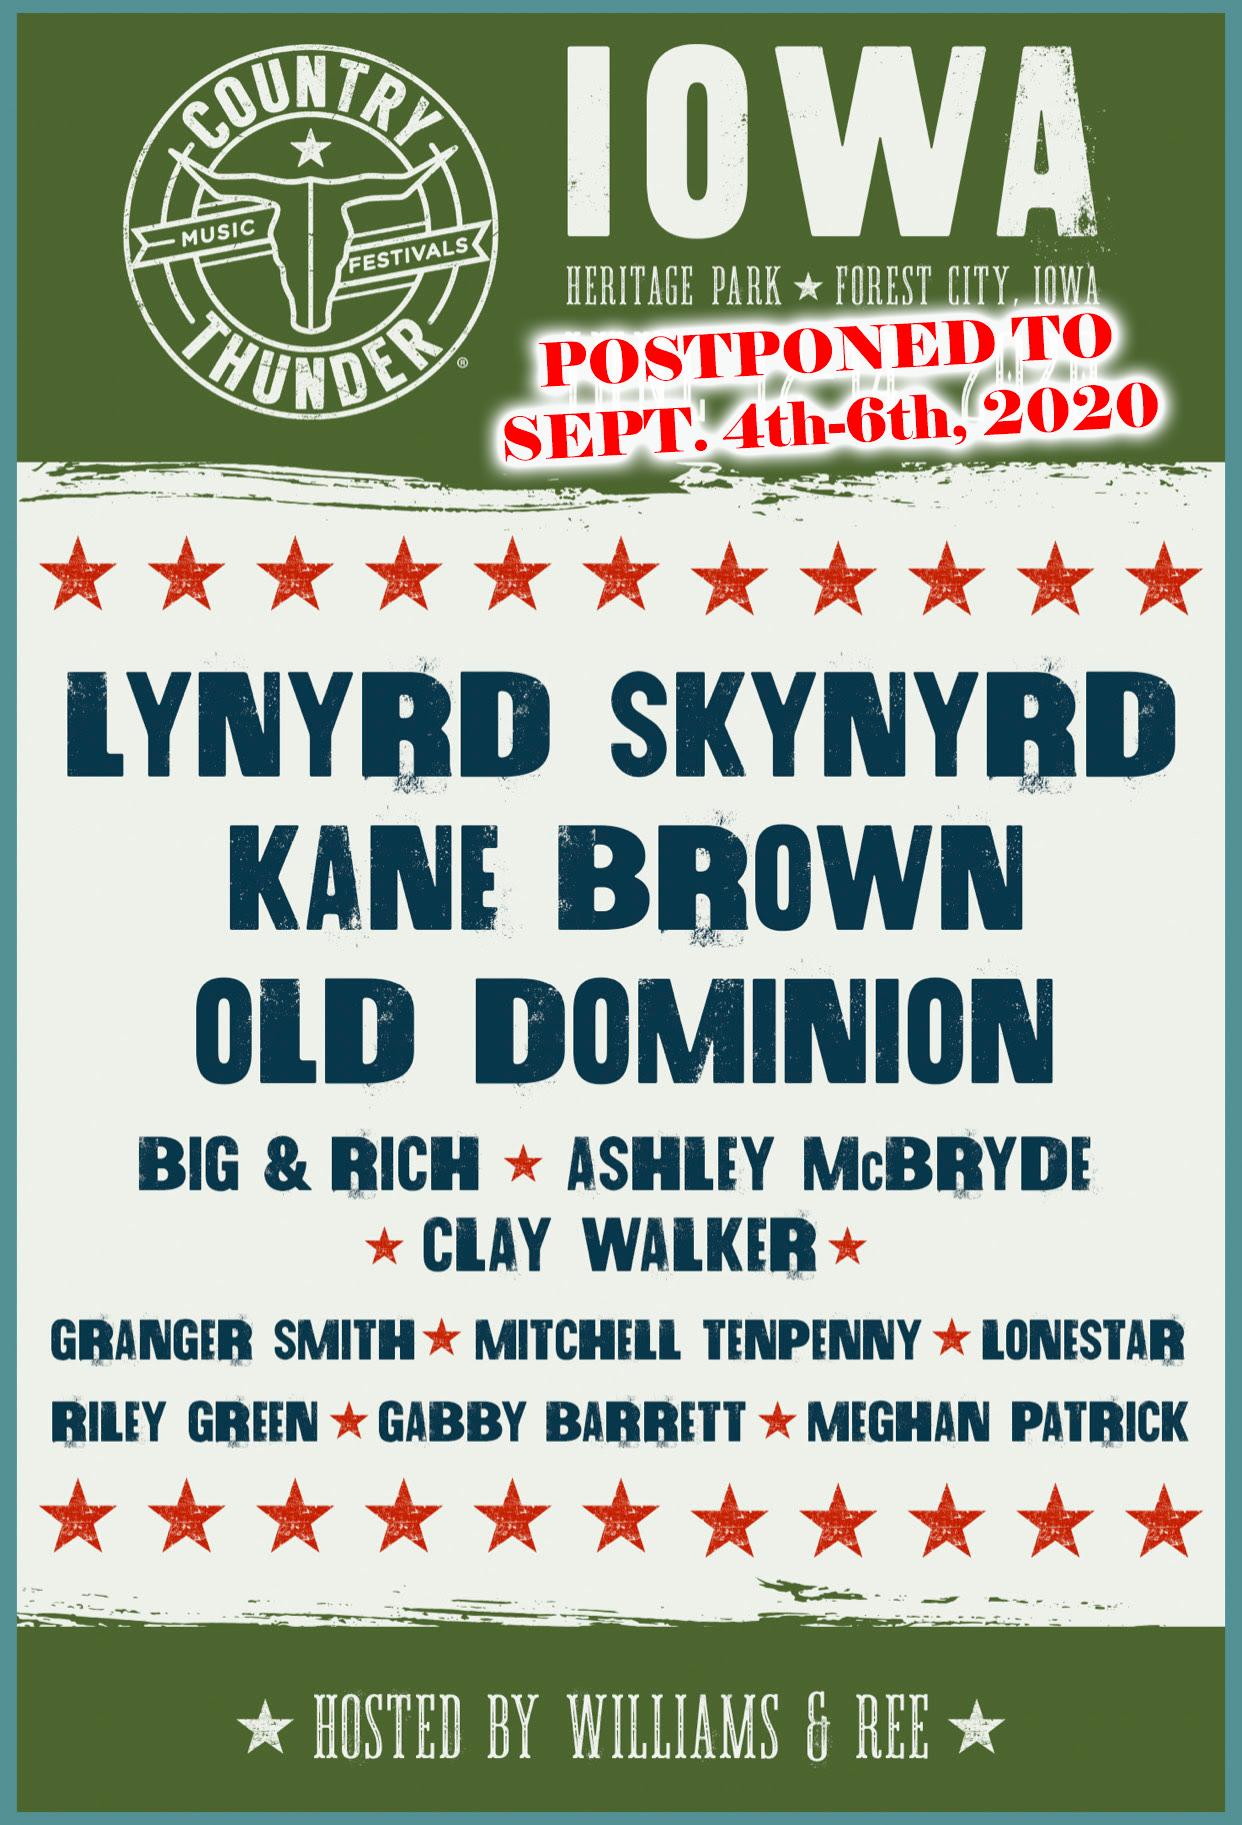 Country Thunder Iowa 2020